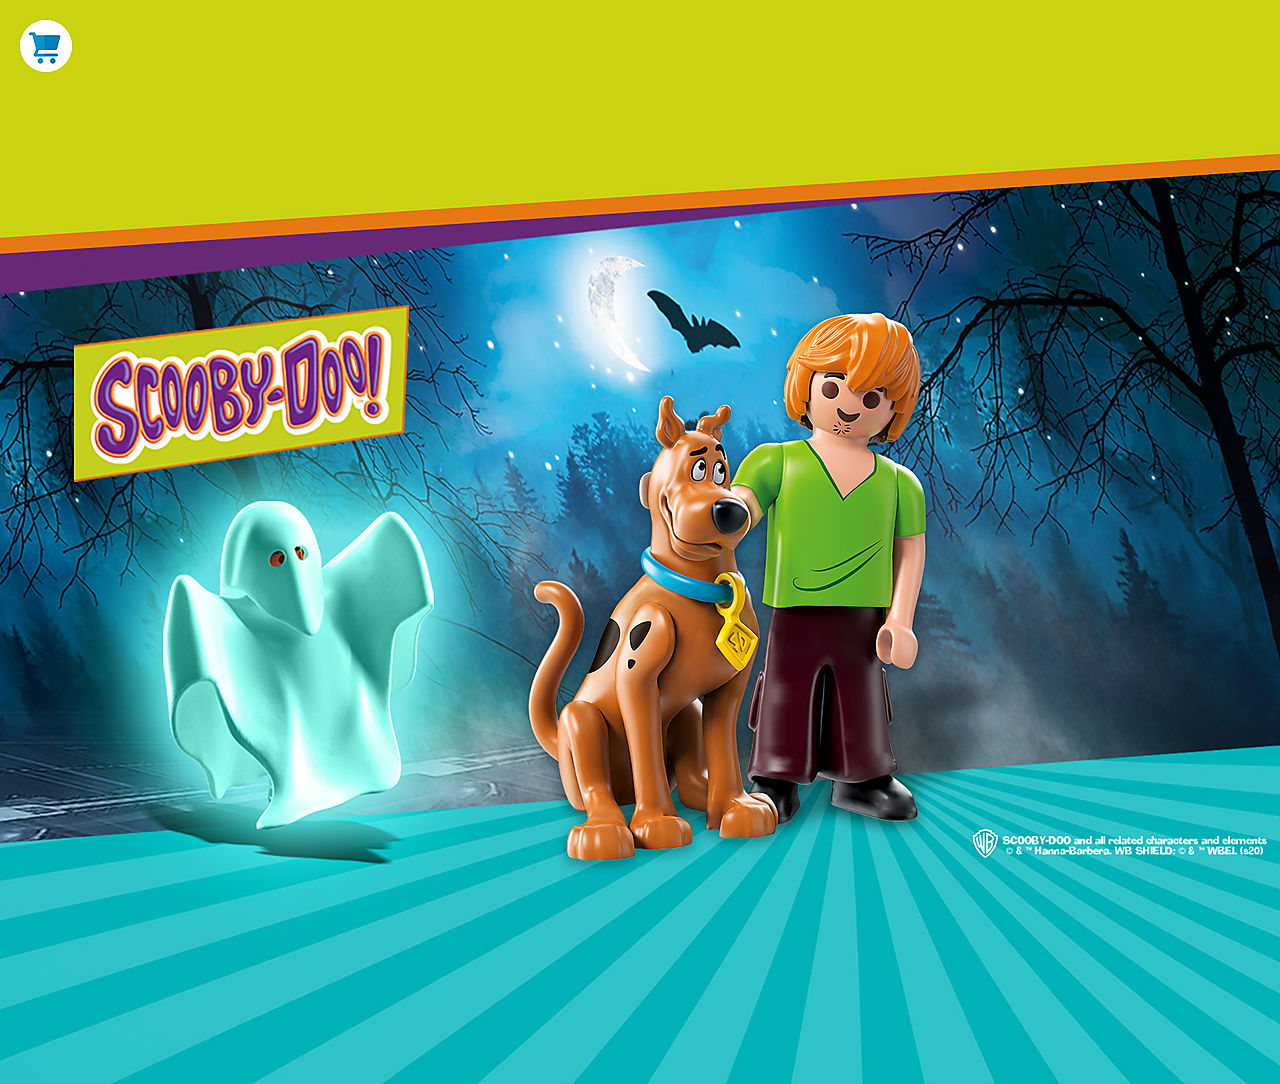 SHOP_SCOOBY-DOO_2020_3X2